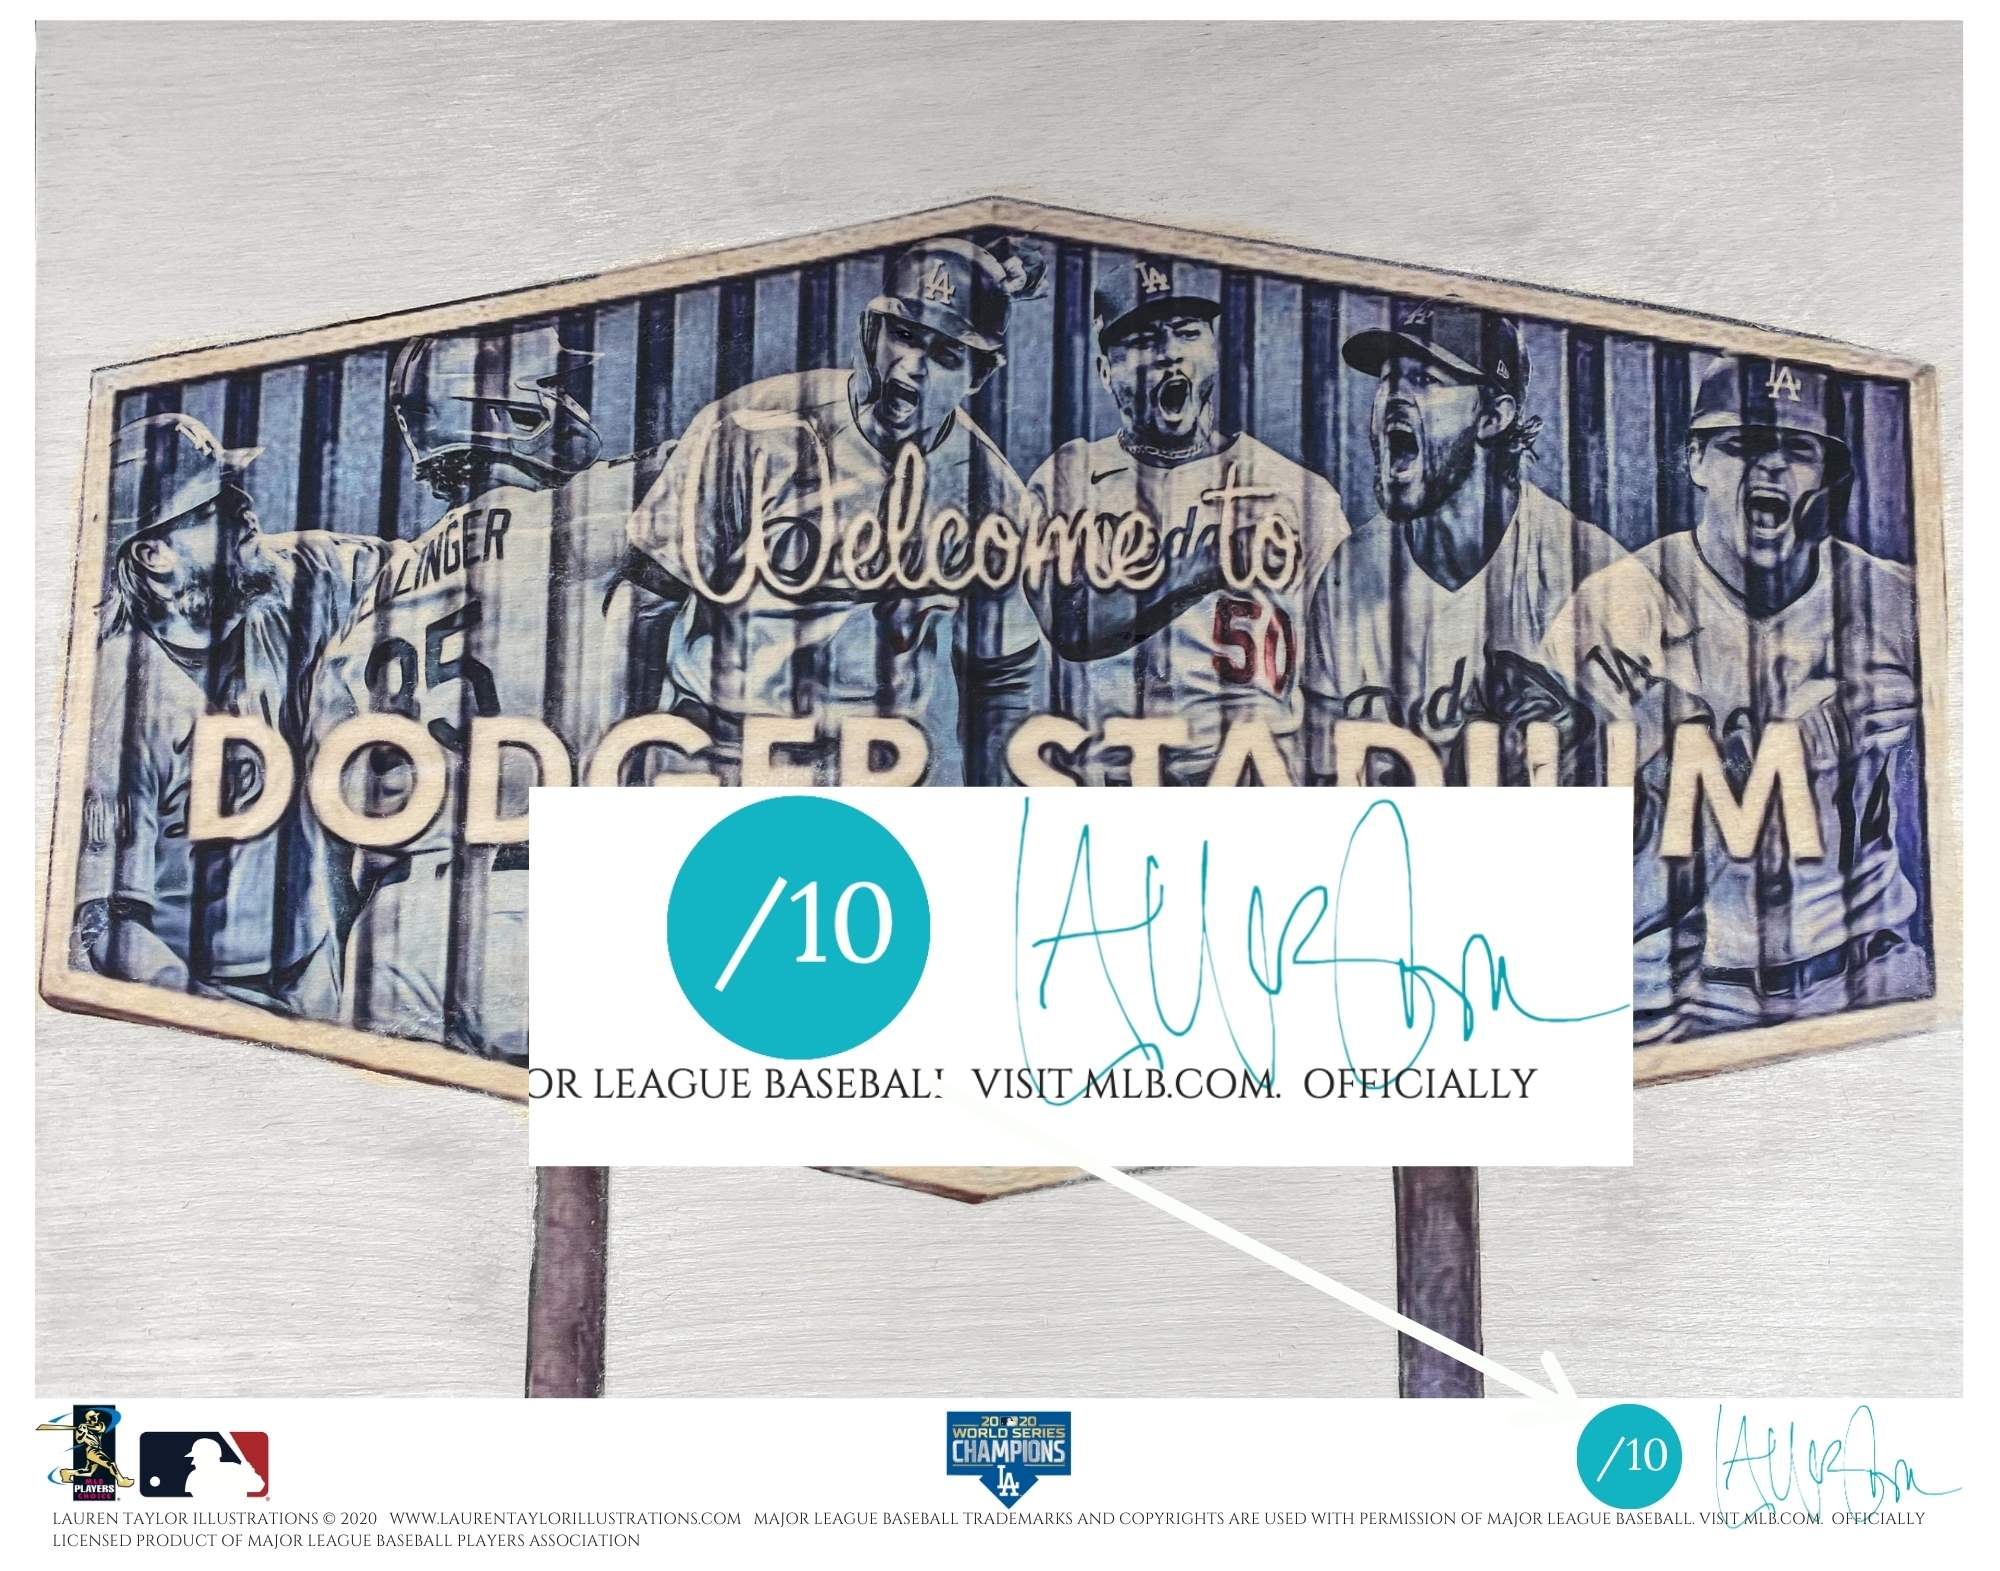 """Dodger Blue"" (Los Angeles Dodgers) 2020 World Series Champions - Officially Licensed MLB Print - Commemorative TEAL SIGNATURE Limited Release /10"